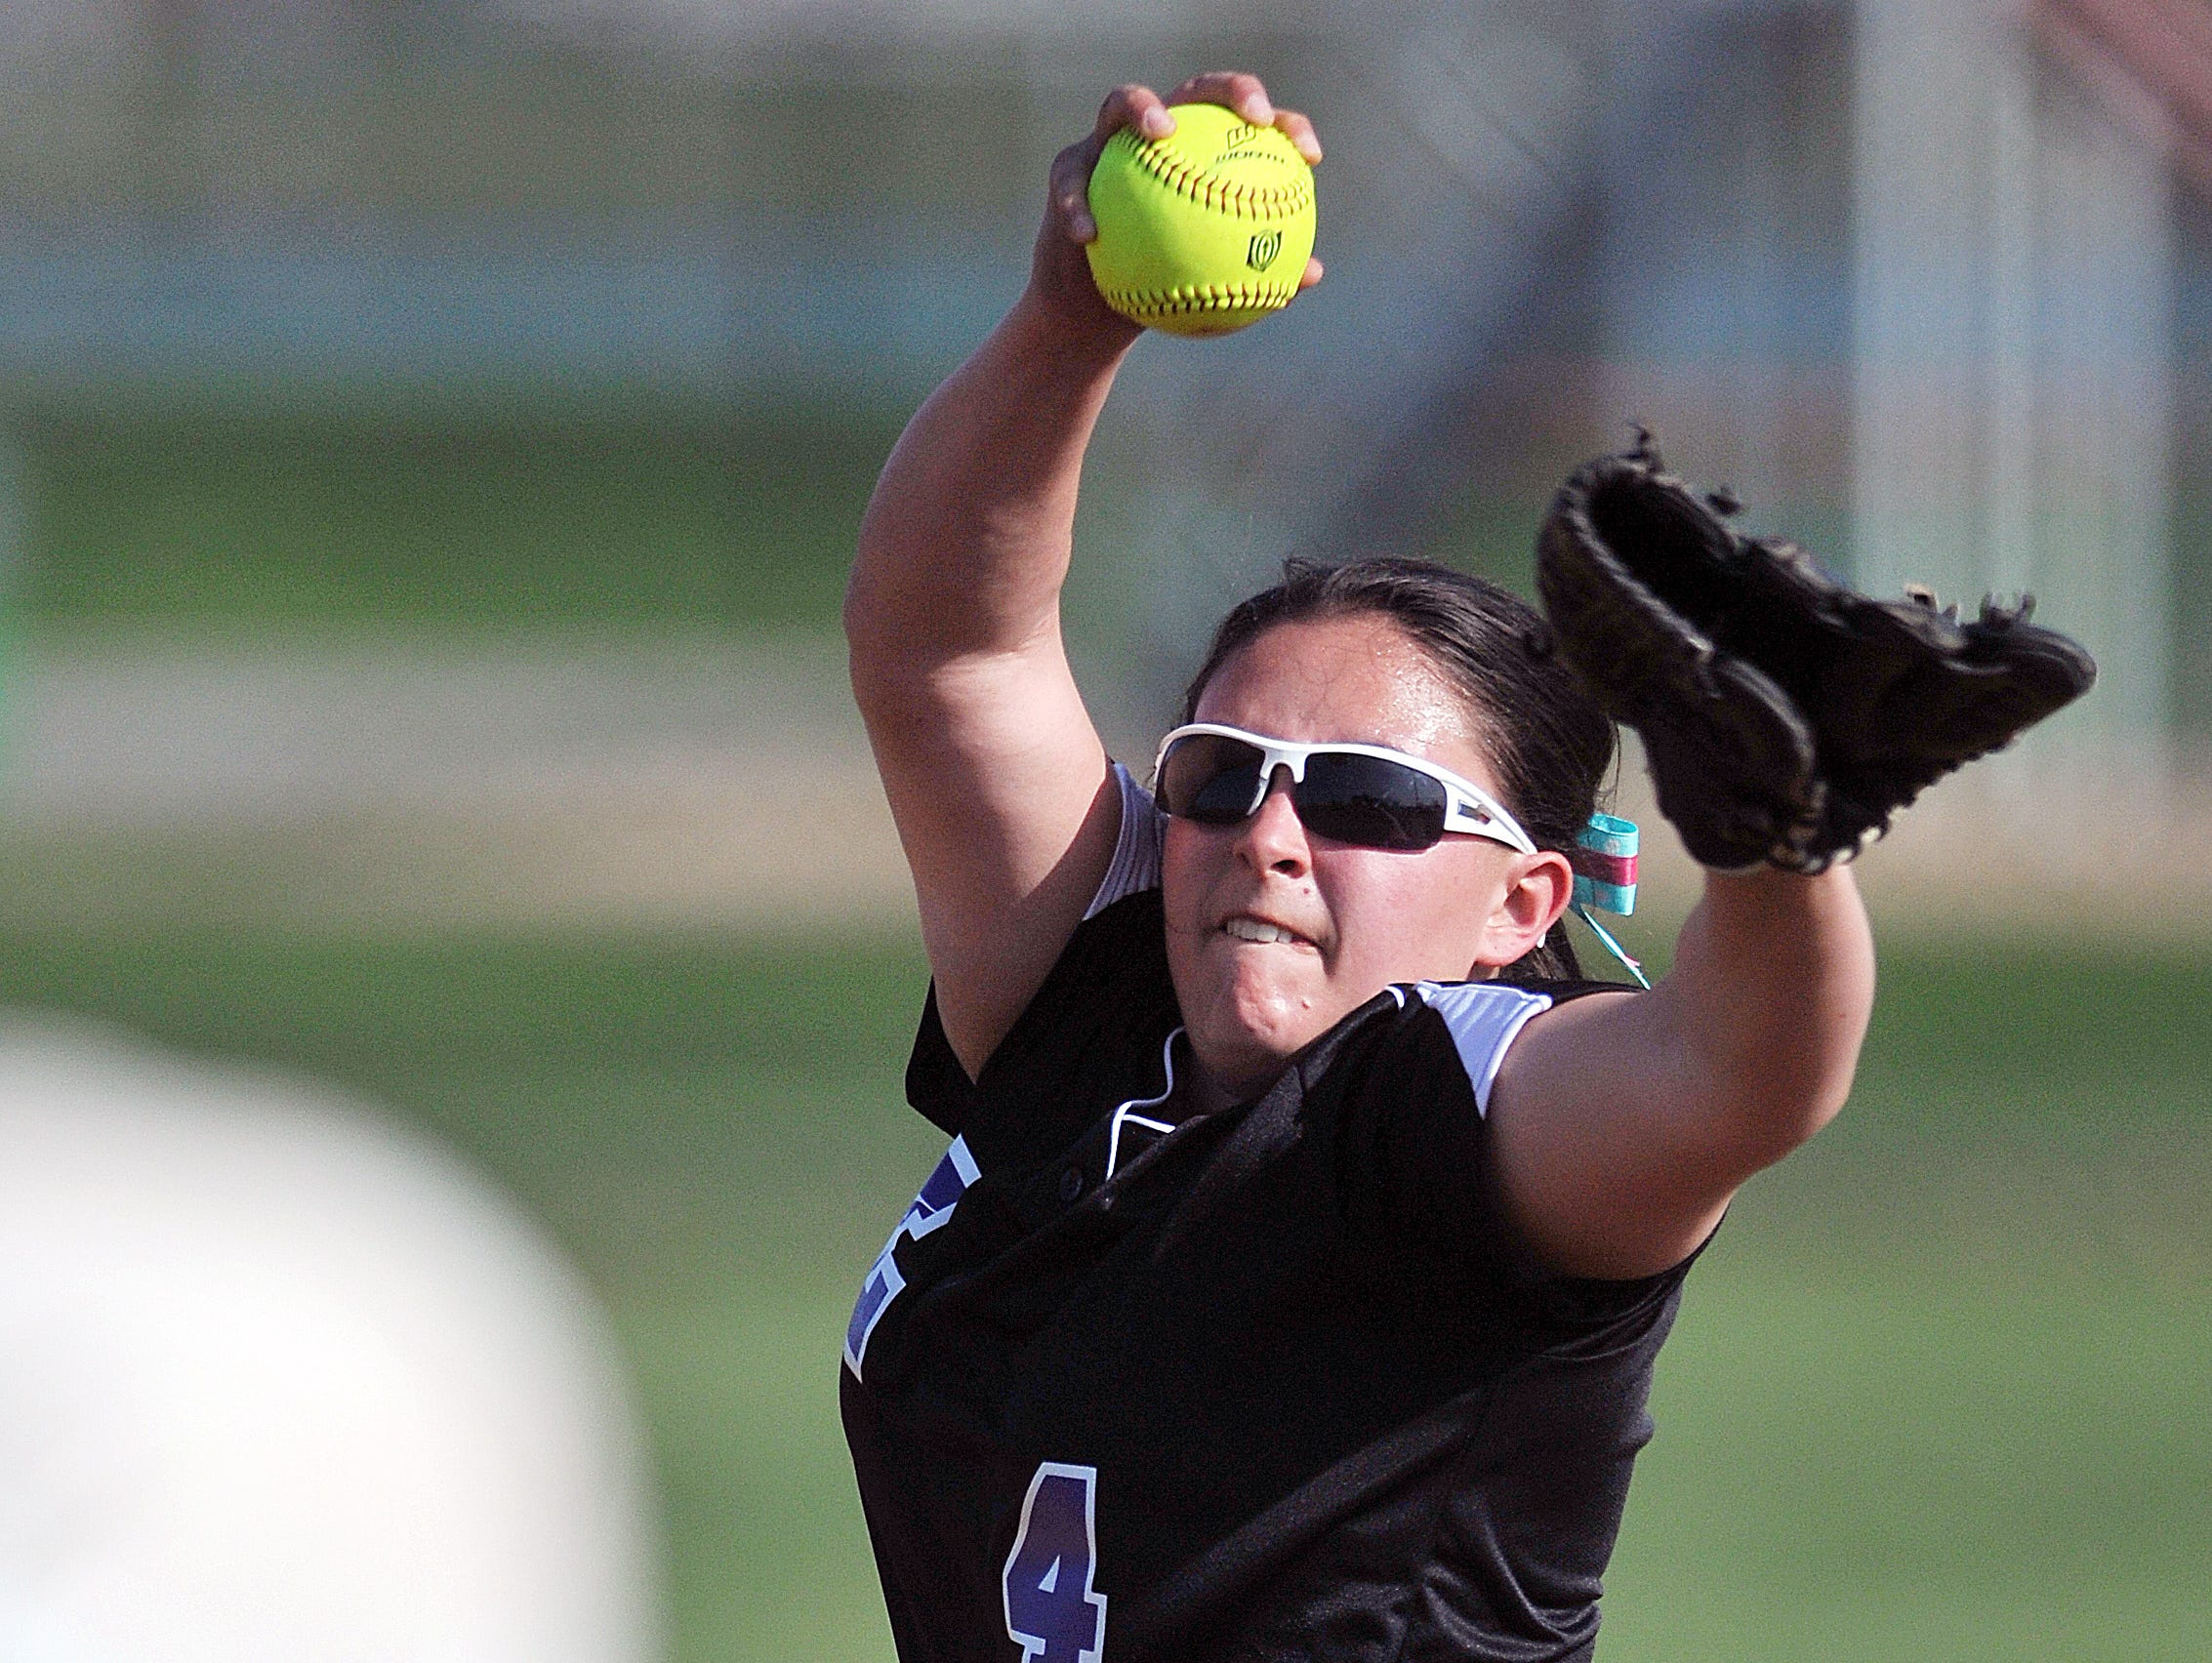 Lexington's Abigail Sgro pitches against Mount St. Dominic during the Wendy's Spring Classic at Brookside Park West Field No. 2 Friday.